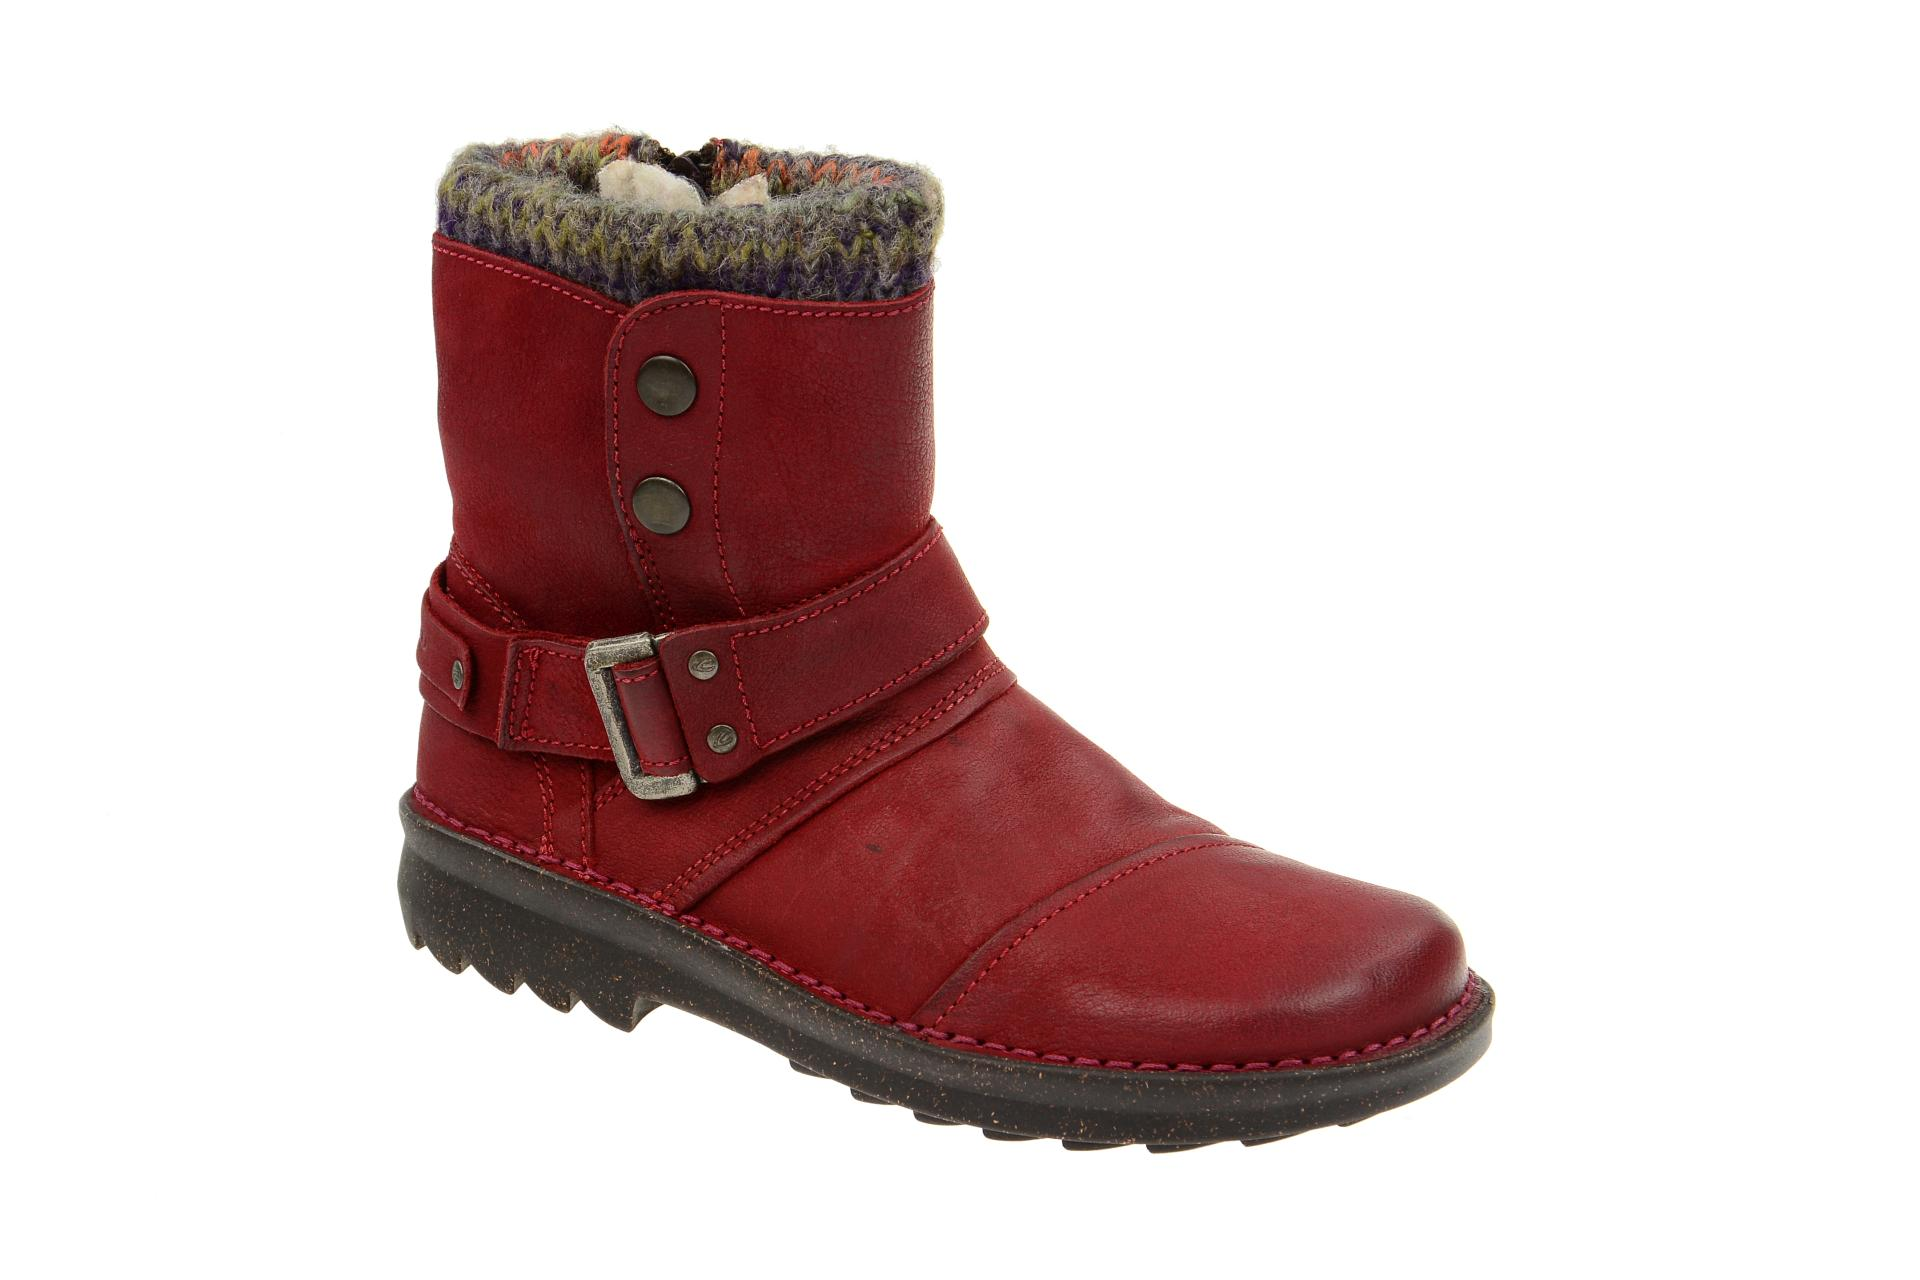 info for c3d2f a53f5 camel active Ontario 28 Stiefelette rot